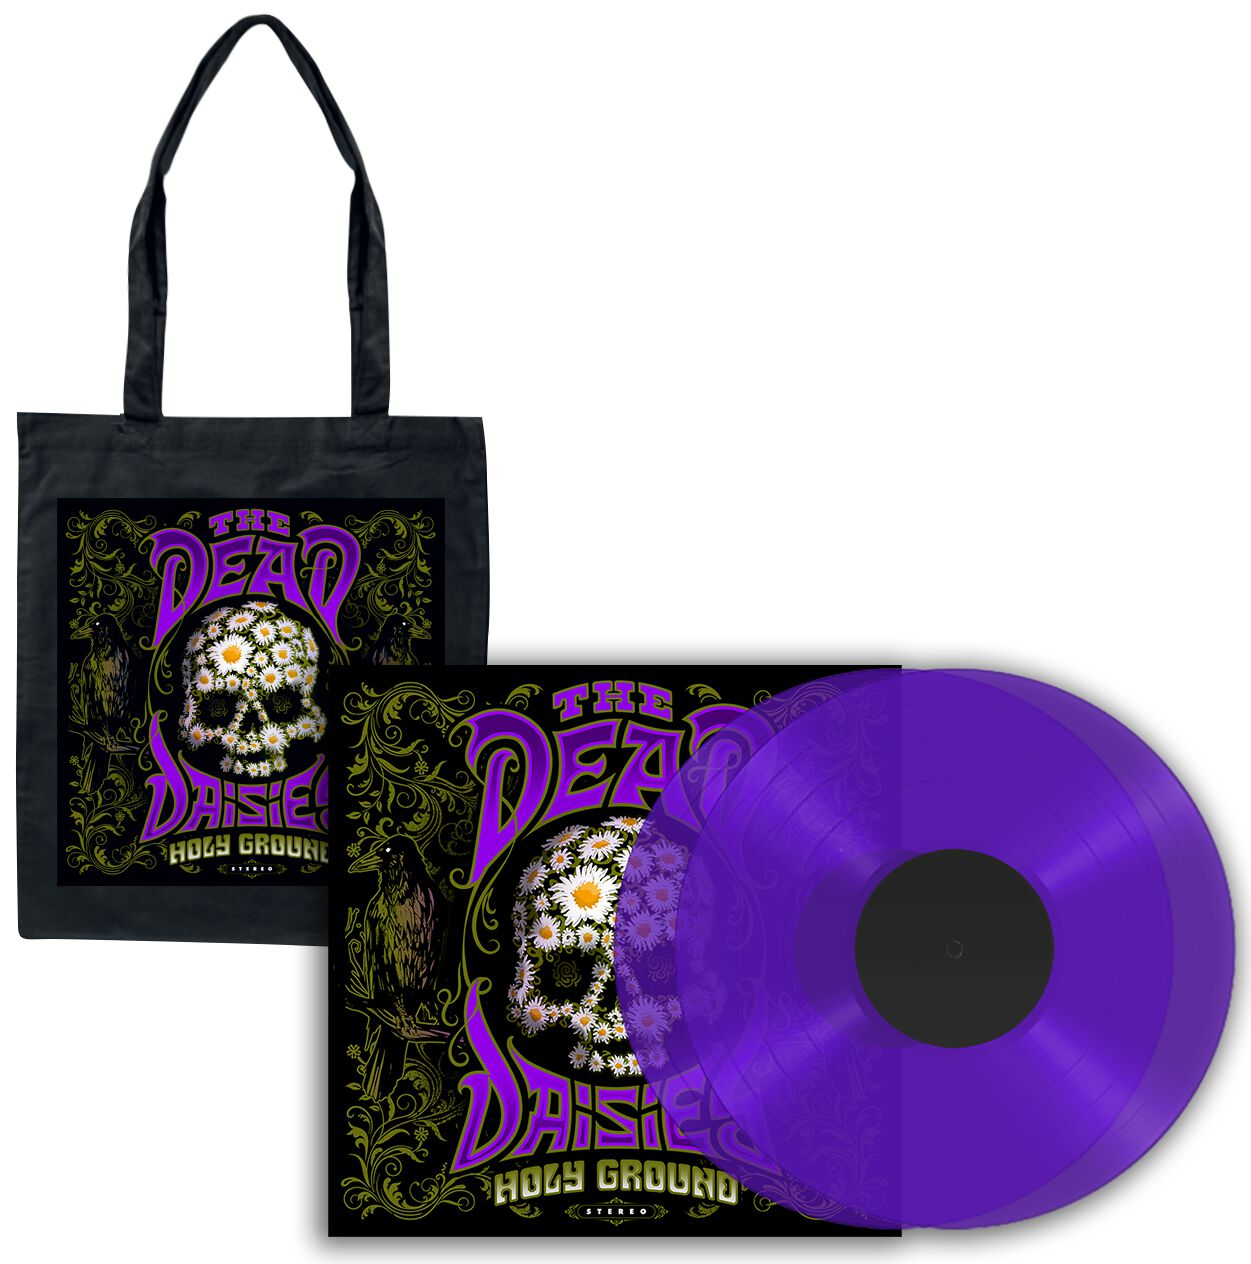 Image of The Dead Daisies Holy ground 2-LP & Stofftasche violett